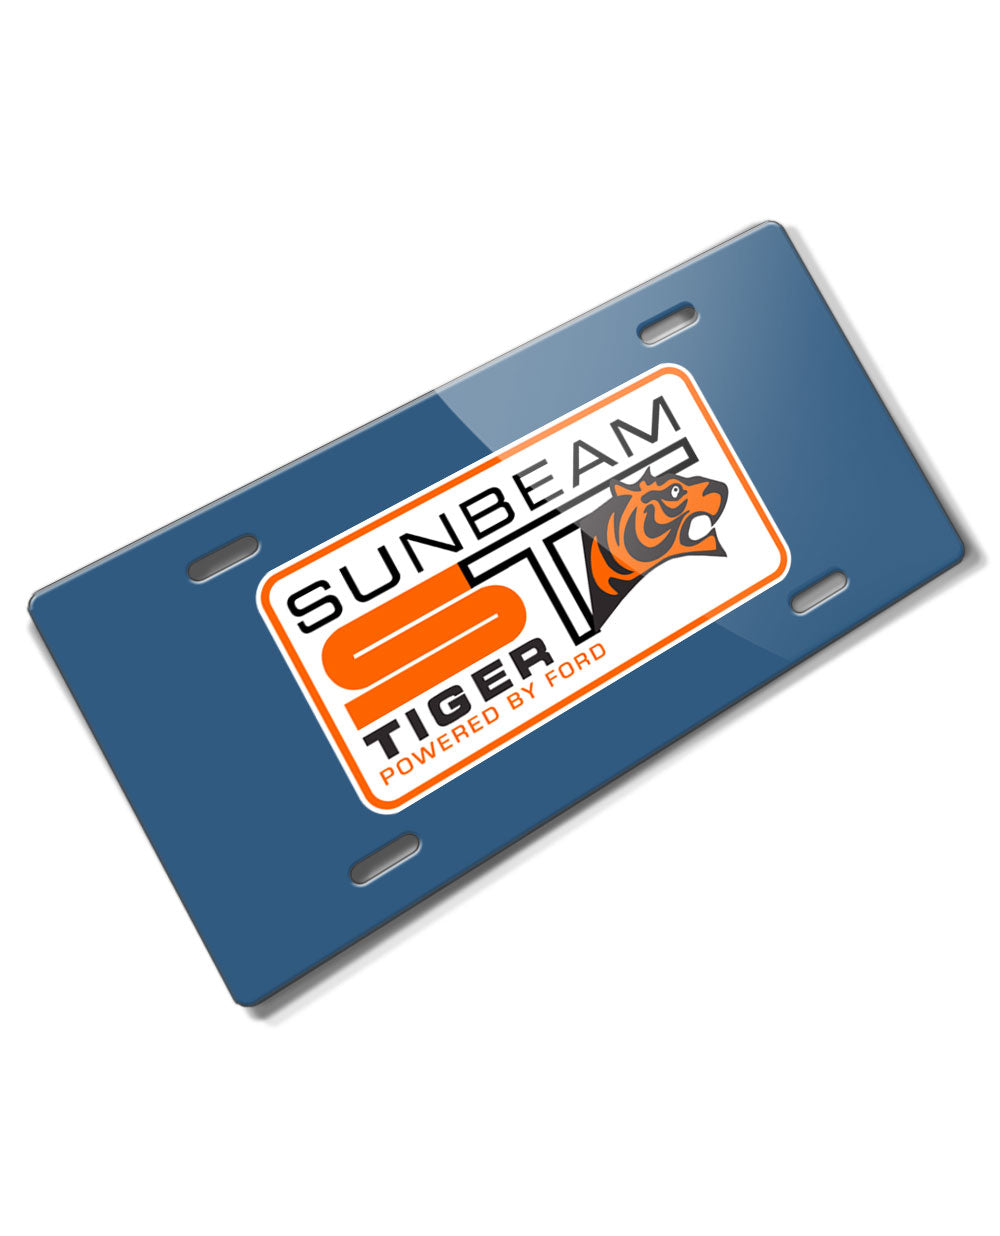 Sunbeam Tiger Emblem Novelty License Plate - Vintage Emblem